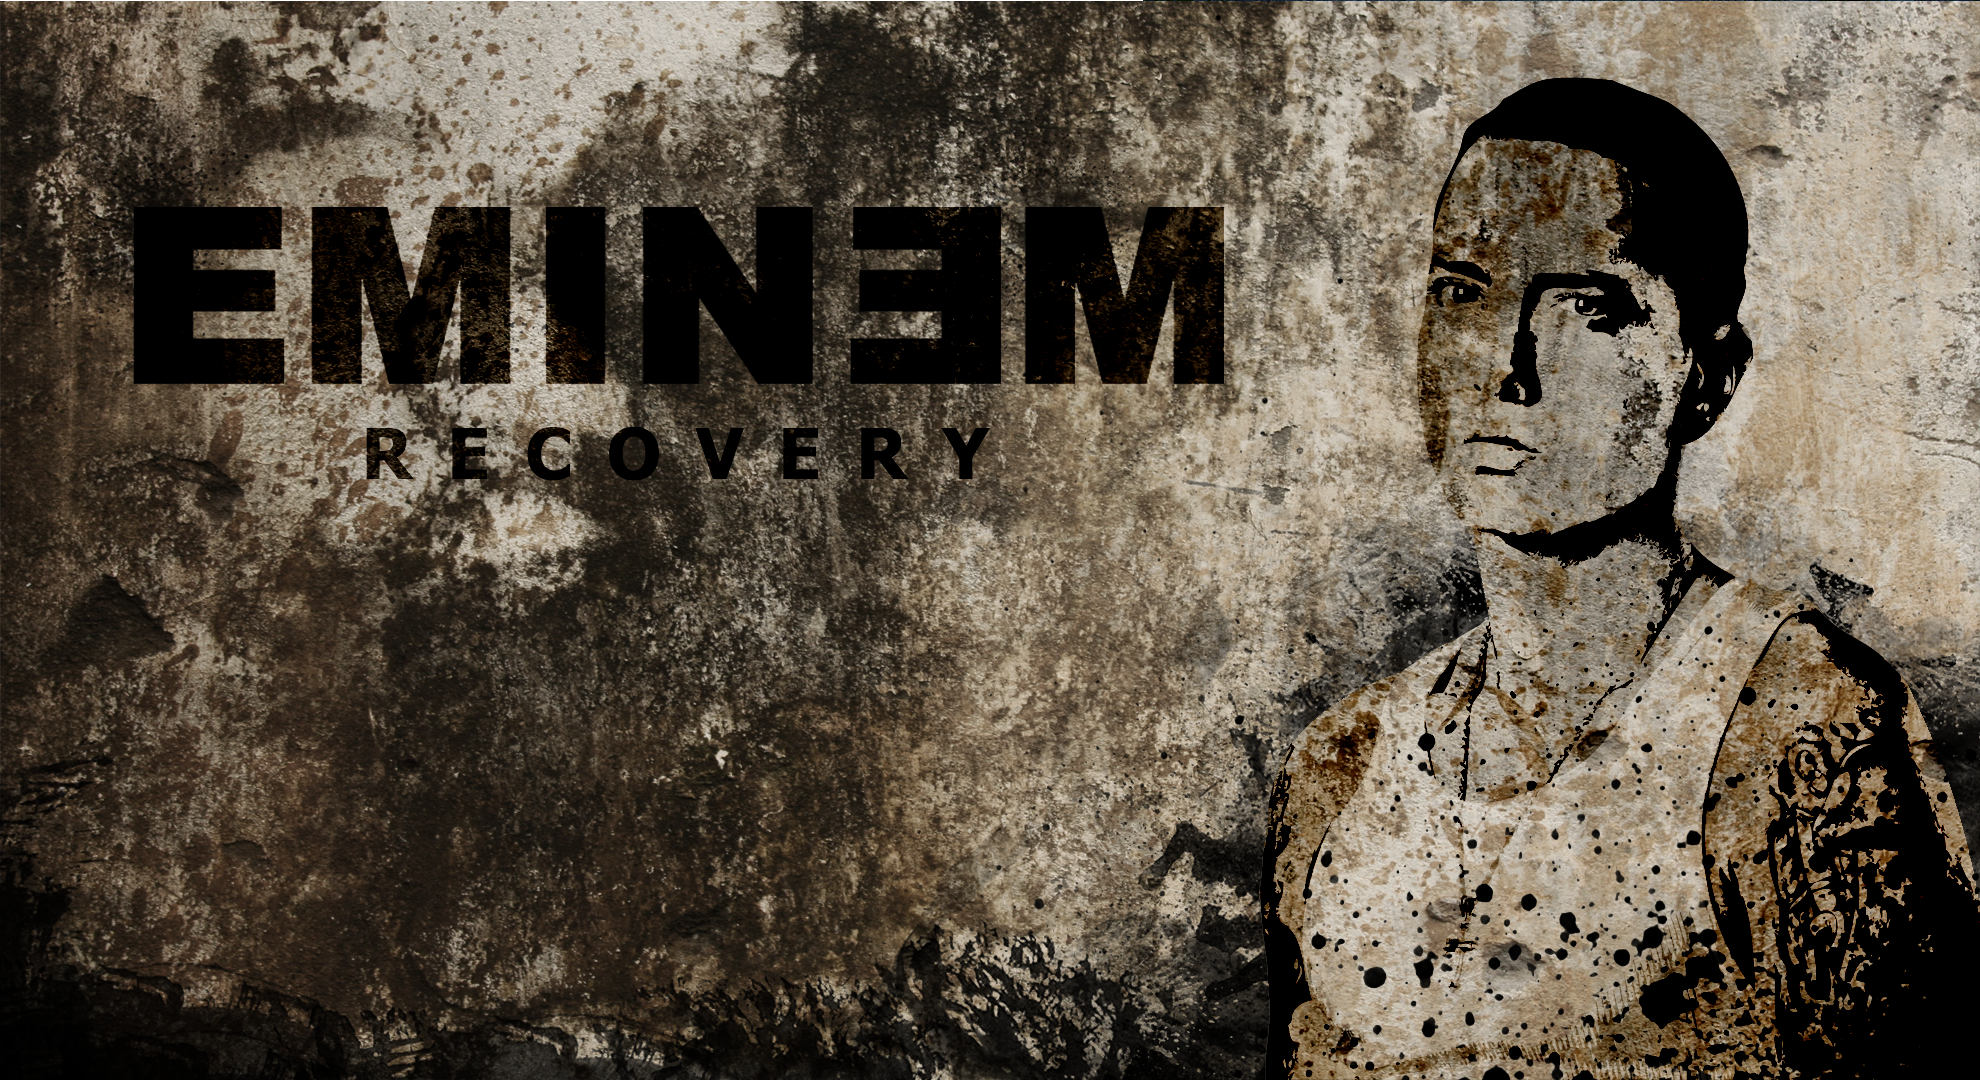 want wallpaper hd eminem on your computer screen design